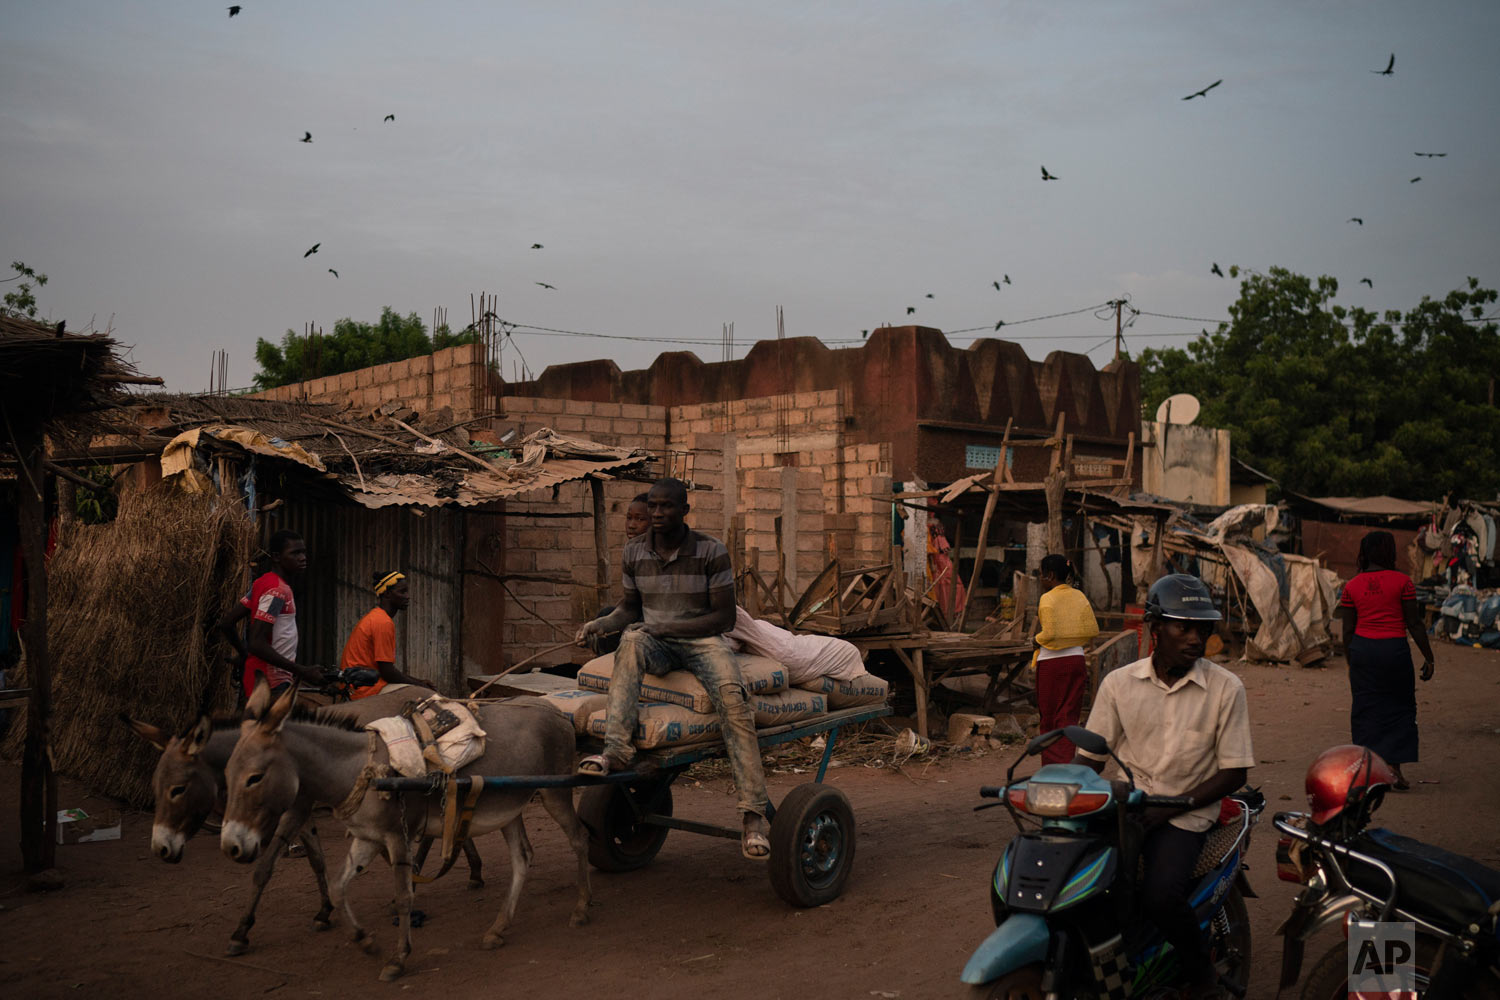 A man rides his motorcycle as people walk on a street on Nov. 26, 2018, in Goudiry, Senegal. (AP Photo/Felipe Dana)